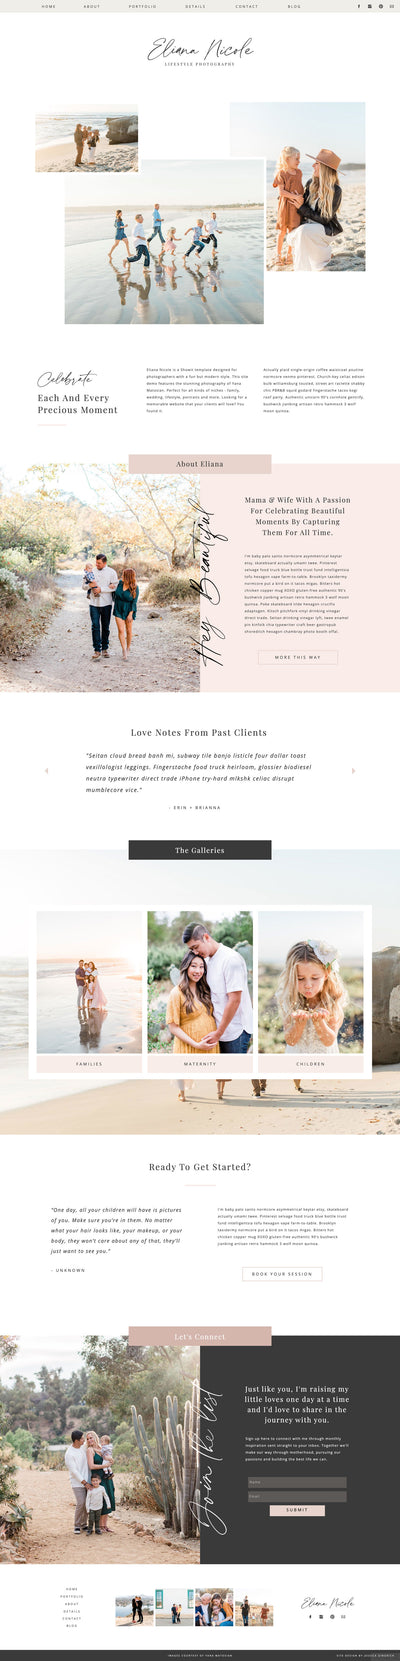 """Eliana Nicole"" Showit Template - jessica gingrich"